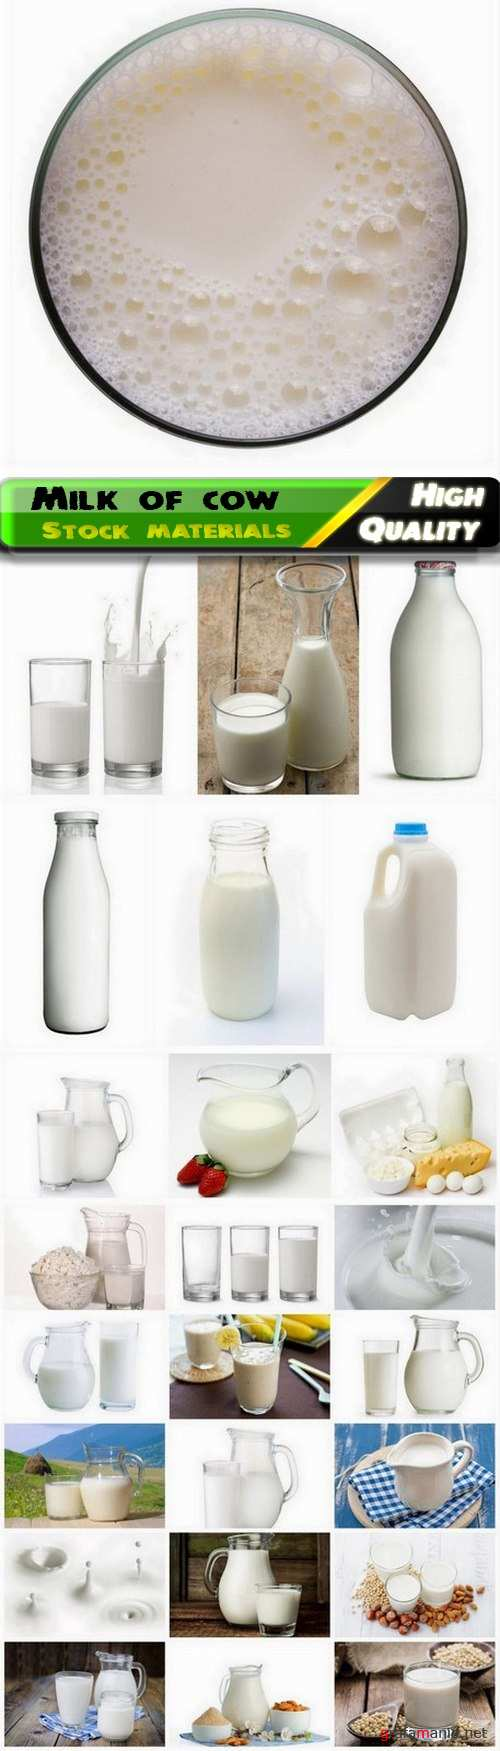 Milk of cow in glass and jug and dairy products - 25 HQ Jpg